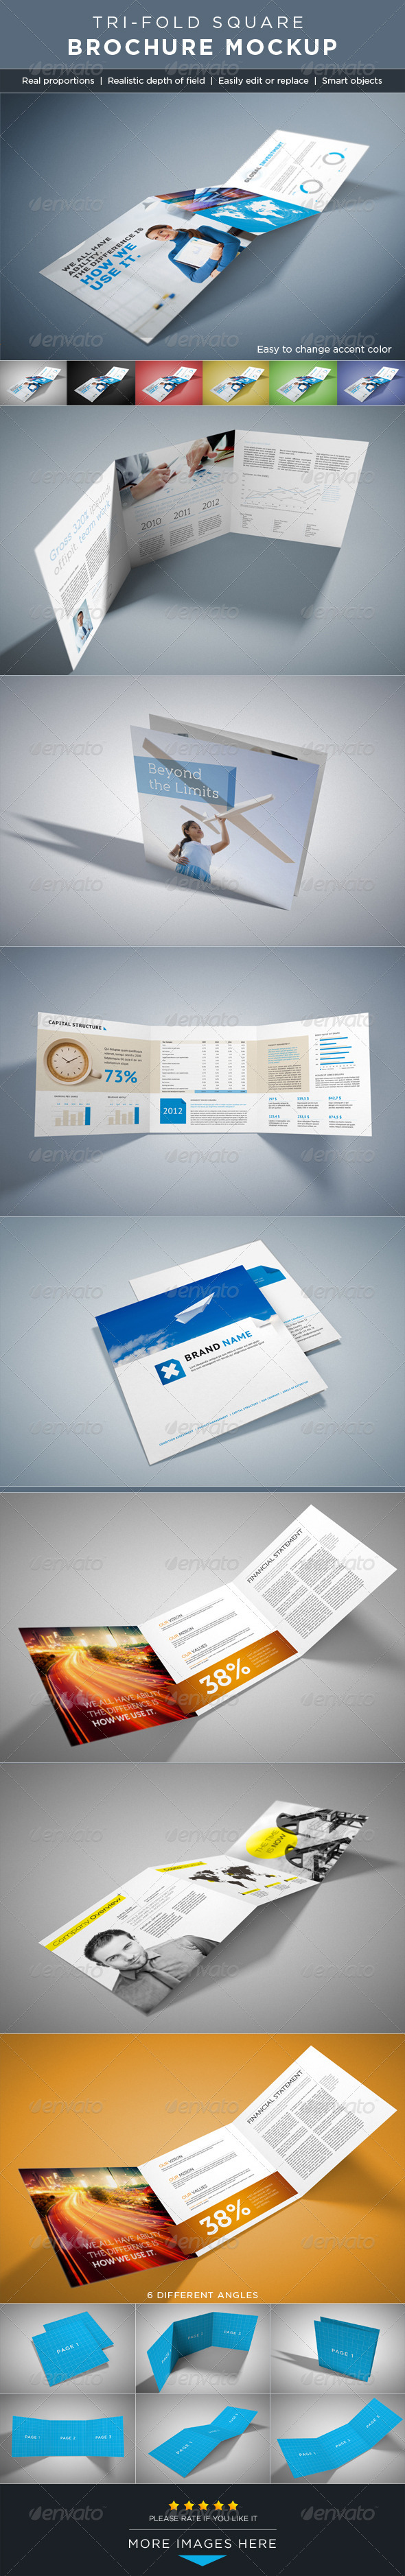 12 free brochure mockup psd download psdtemplatesblog